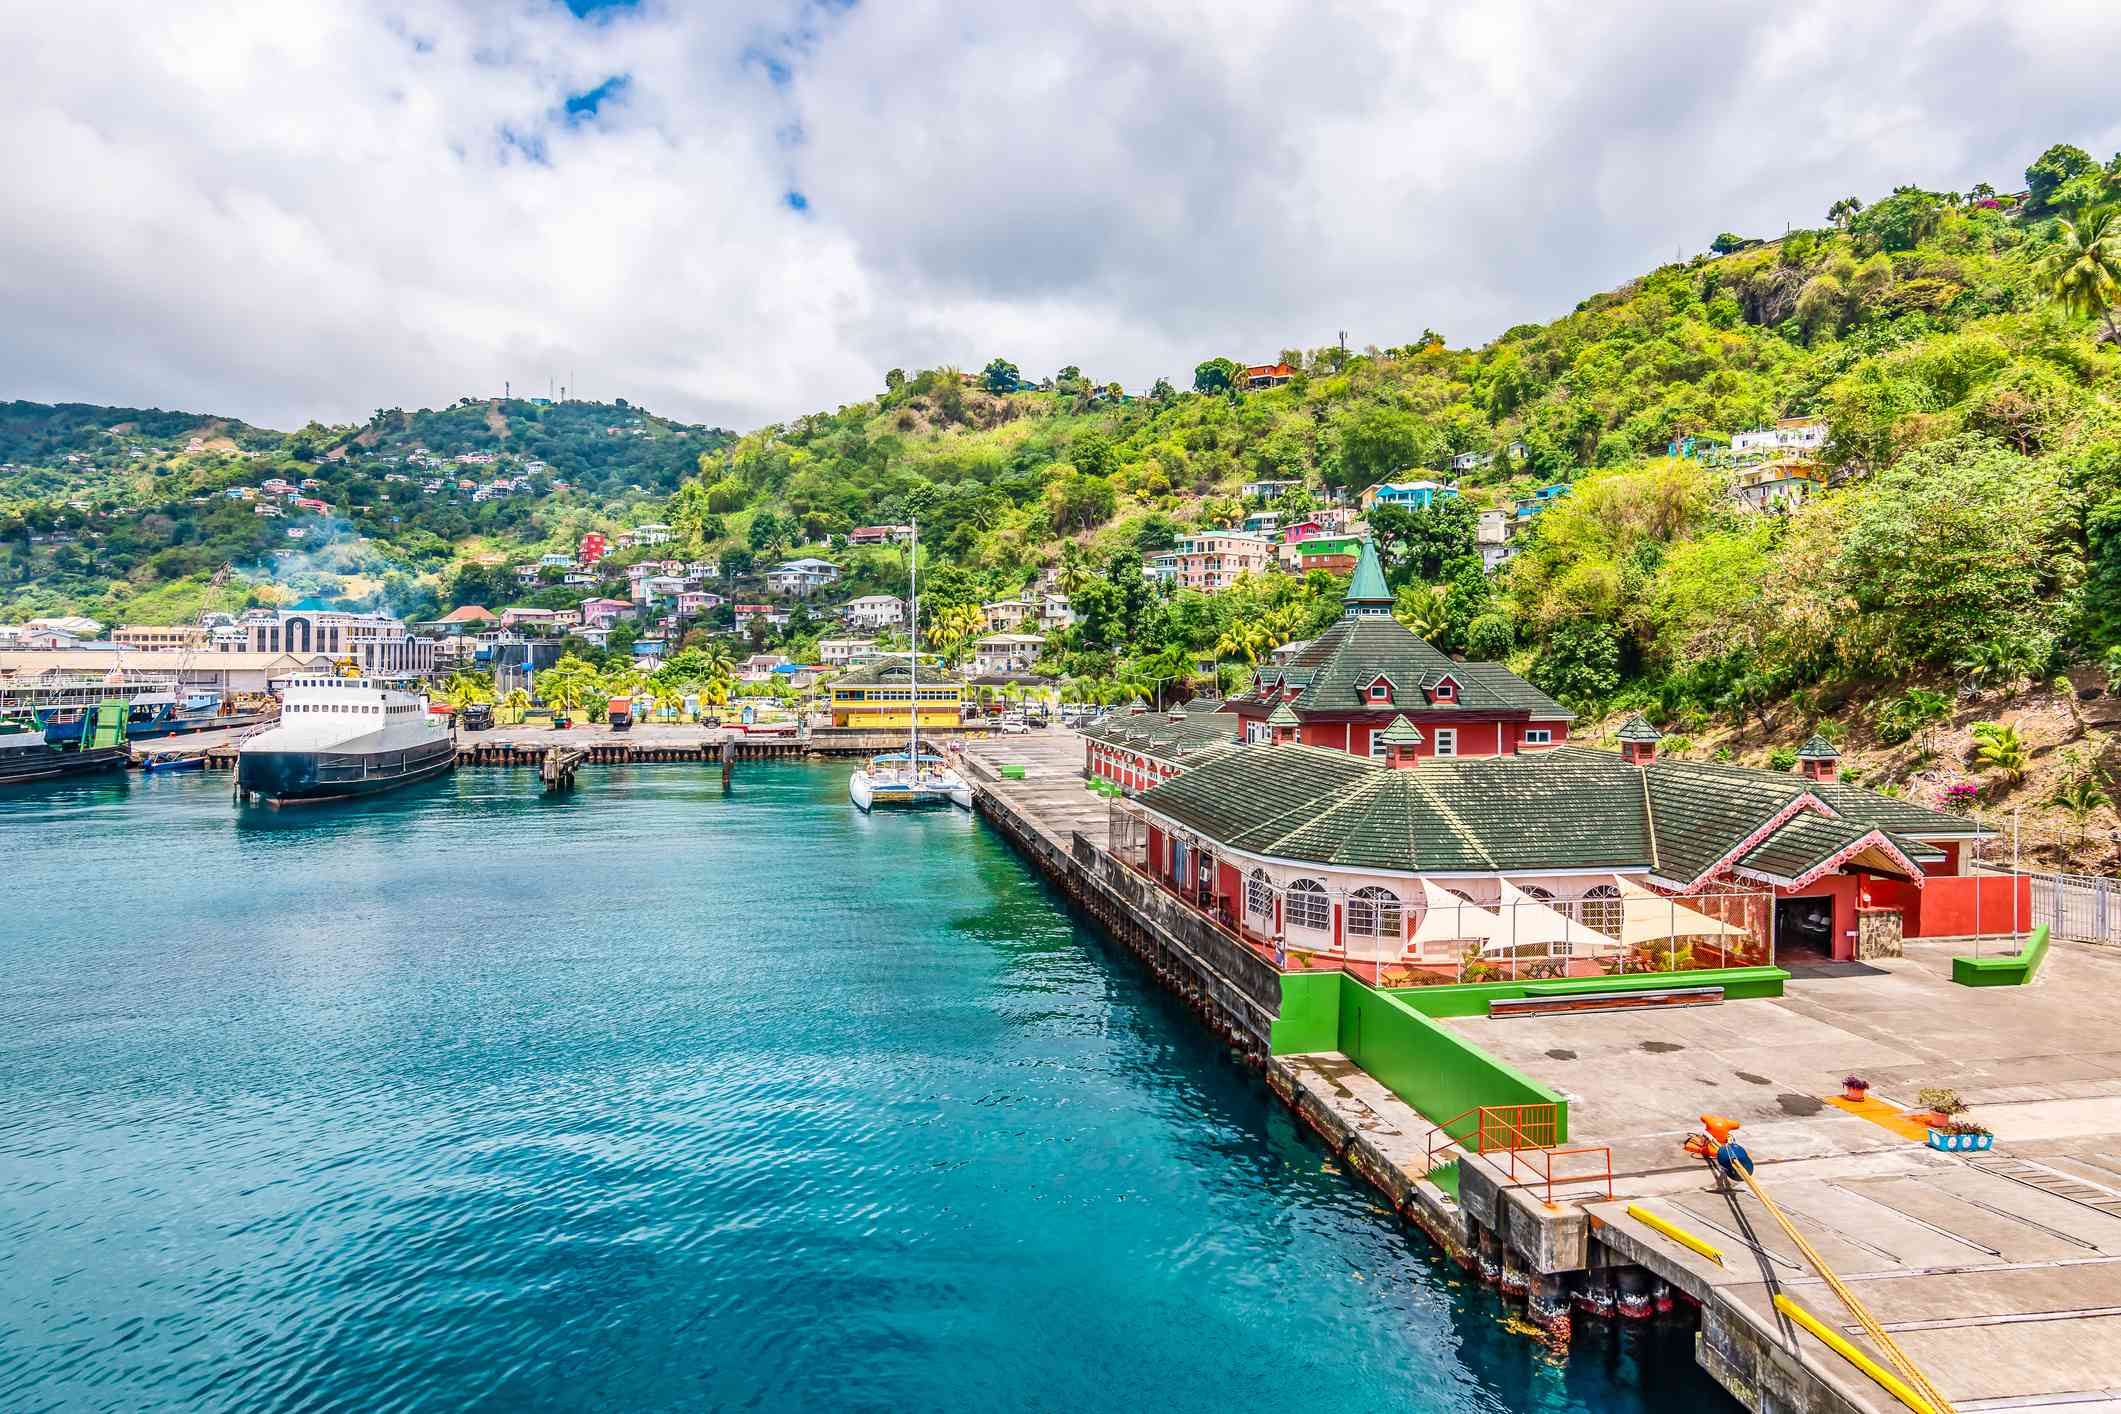 Port of Kingstown, St. Vincent and the Grenadines